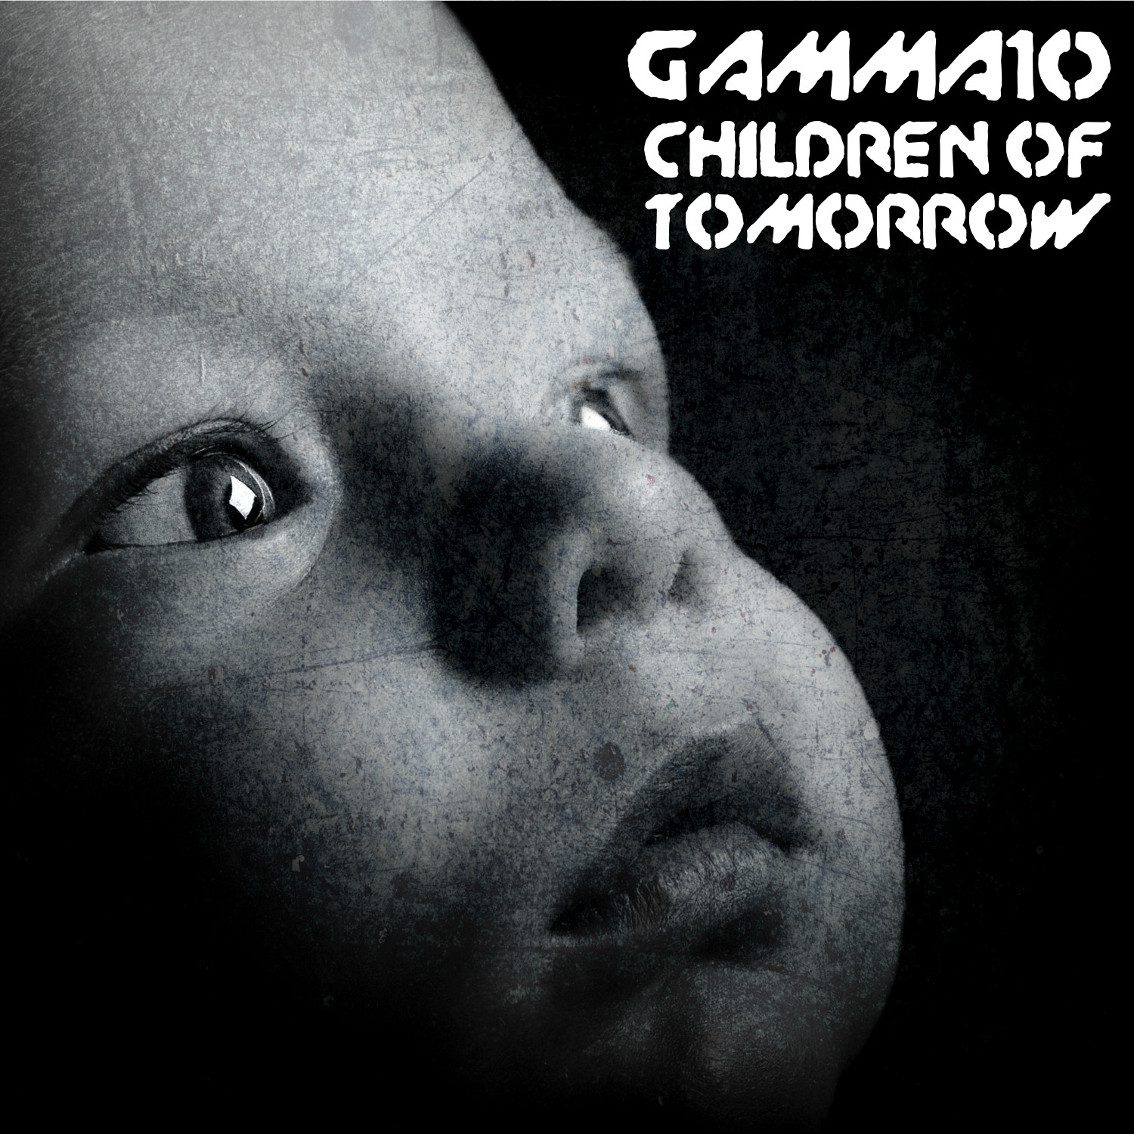 Gamma10's new song is out now:'Children Of Tomorrow' - listen to it here and download it for free